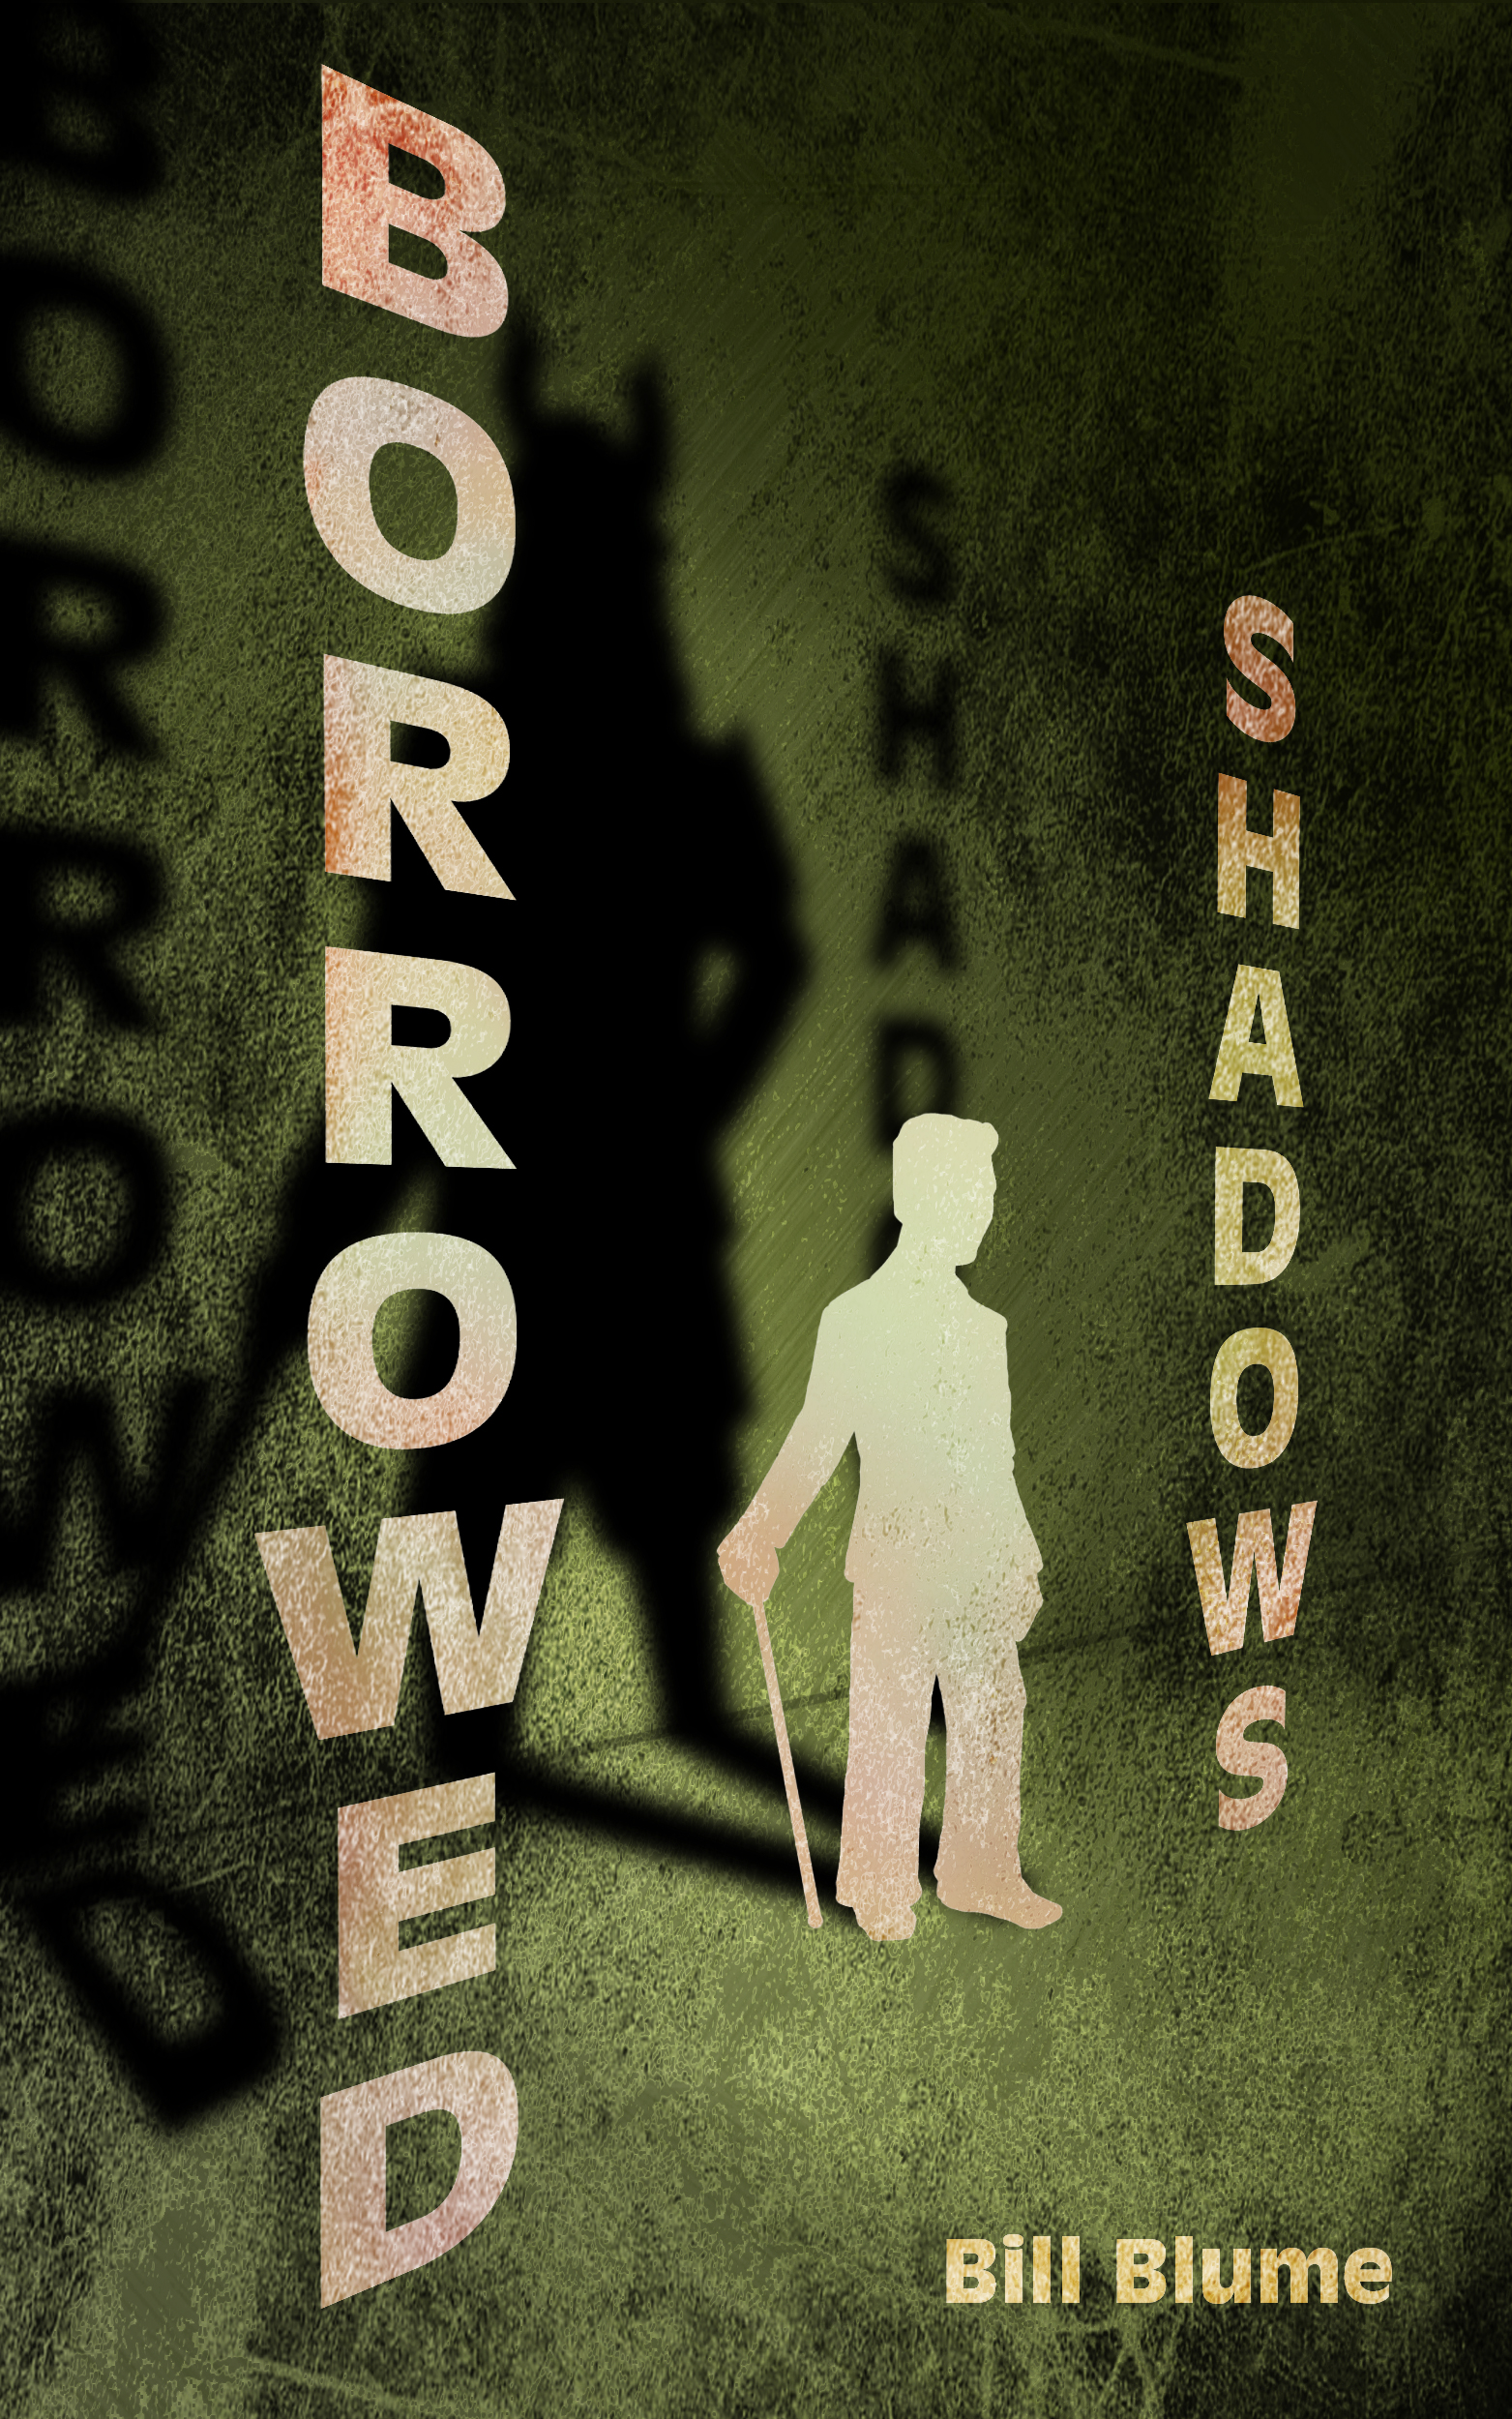 Borrowed Shadows by Bill Blume